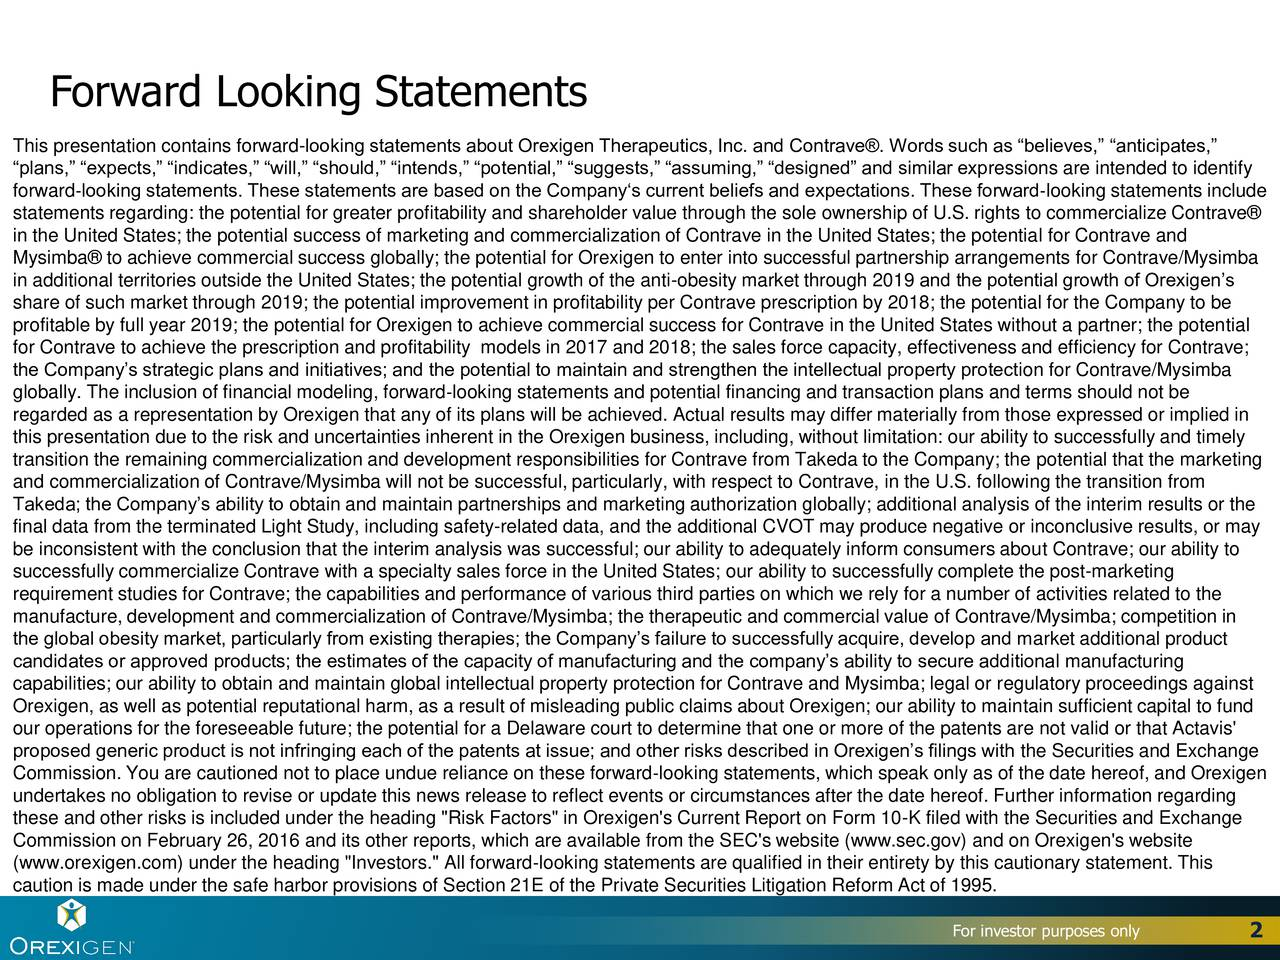 This presentation contains forward-looking statements about Orexigen Therapeutics, Inc. and Contrave. Words such as believes, anticipates, plans, expects, indicates, will, should, intends, potential, suggests, assuming, designed and similar expressions are intended to identify forwardlooking statements. These statements are based on the Companys current beliefs and expectations. These forwardlooking statements include statements regarding: the potential for greater profitability and shareholder value through the sole ownership of U.S. rights to commercialize Contrave in the United States; the potential success of marketing and commercialization of Contrave in the United States; the potential for Contrave and Mysimba to achieve commercial success globally; the potential for Orexigen to enter into successful partnership arrangements for Contrave/Mysimba in additional territories outside the United States; the potential growth of the anti-obesity market through 2019 and the potential growth of Orexigens share of such market through 2019; the potential improvement in profitability per Contrave prescription by 2018; the potential for the Company to be profitable by full year 2019; the potential for Orexigen to achieve commercial success for Contrave in the United States without a partner; the potential for Contrave to achieve the prescription and profitability models in 2017 and 2018; the sales force capacity, effectiveness and efficiency for Contrave; the Companys strategic plans and initiatives; and the potential to maintain and strengthen the intellectual property protection for Contrave/Mysimba globally. The inclusion of financial modeling, forwardlooking statements and potential financing and transaction plans and terms should not be regarded as a representation by Orexigen that any of its plans will be achieved. Actual results may differ materially from those expressed or implied in this presentation due to the risk and uncertainties inherent in the Orexigen busine